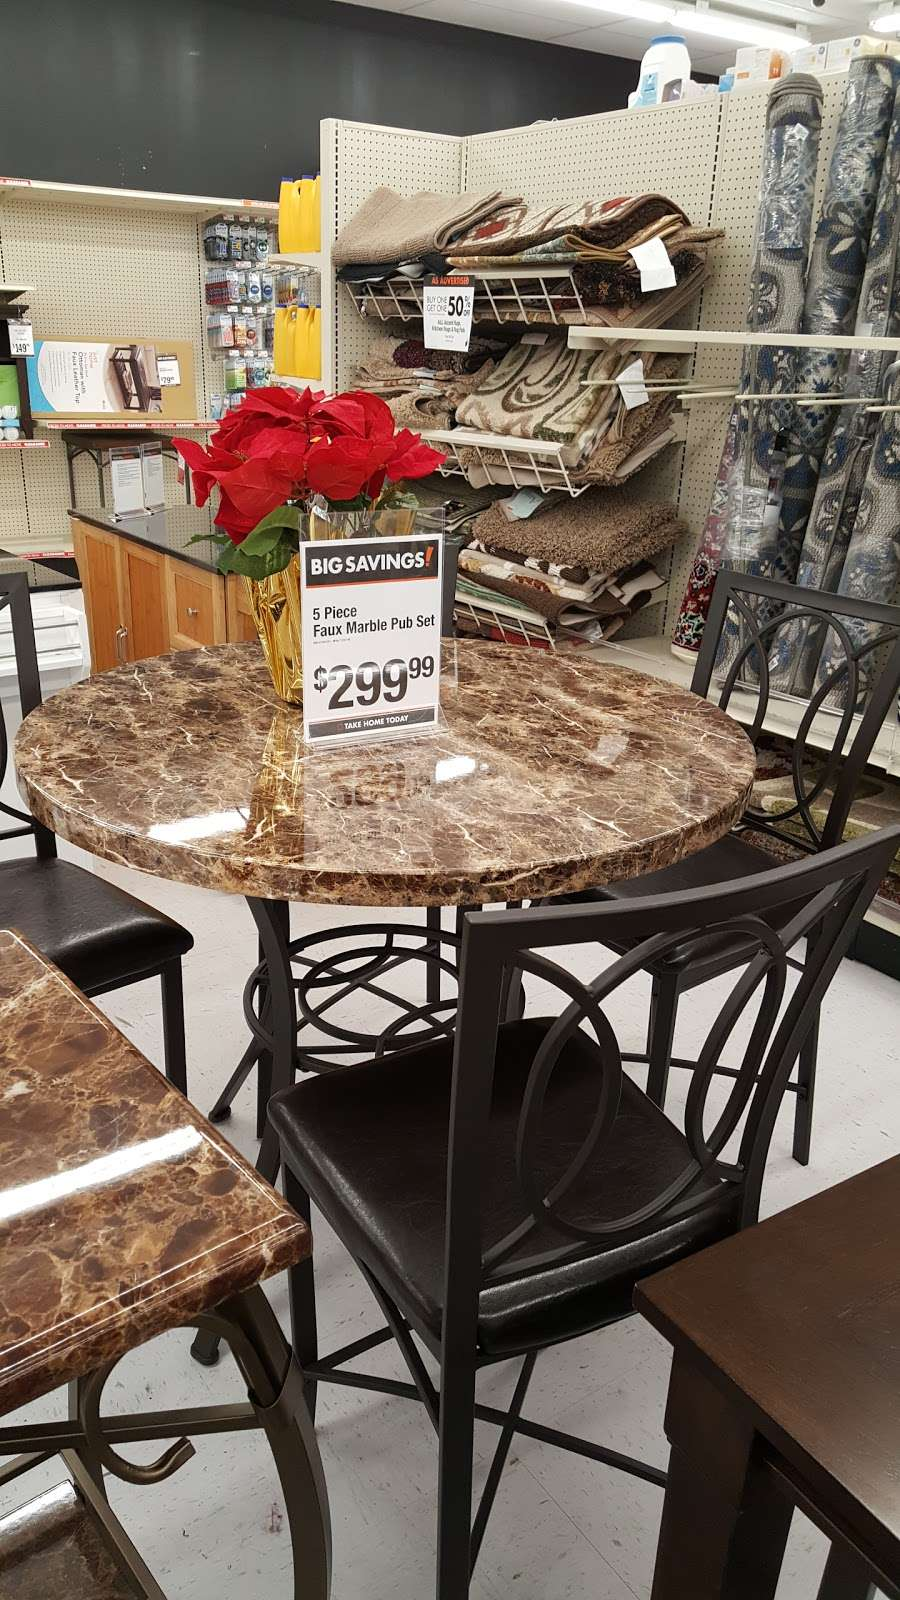 Furniture Direct - furniture store    Photo 4 of 10   Address: 368 Duncan Ave, Jersey City, NJ 07306, USA   Phone: (201) 984-0048